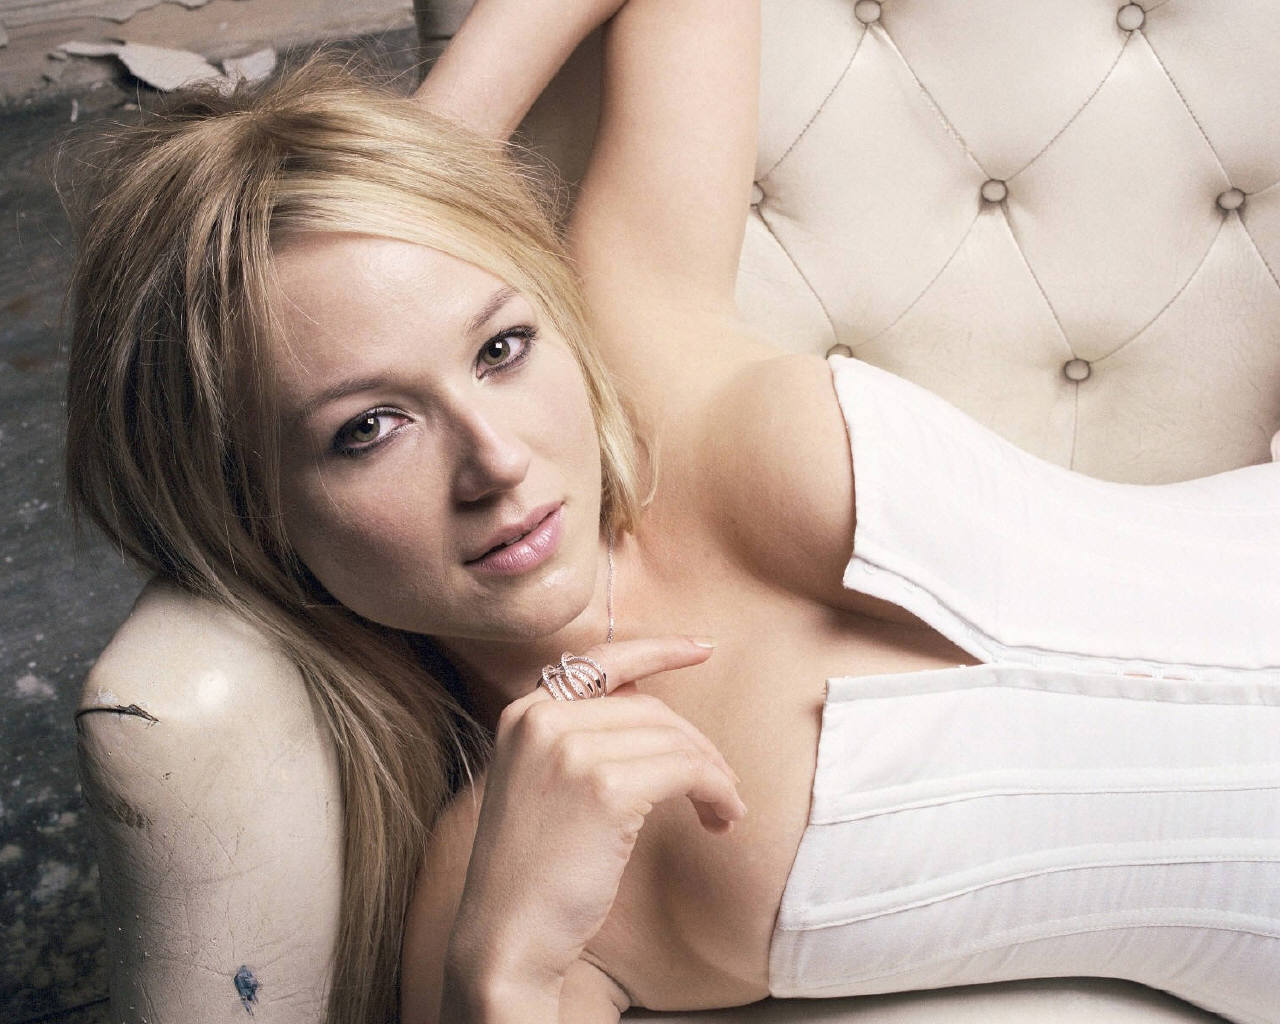 Jewel Kilcher 1280x1024